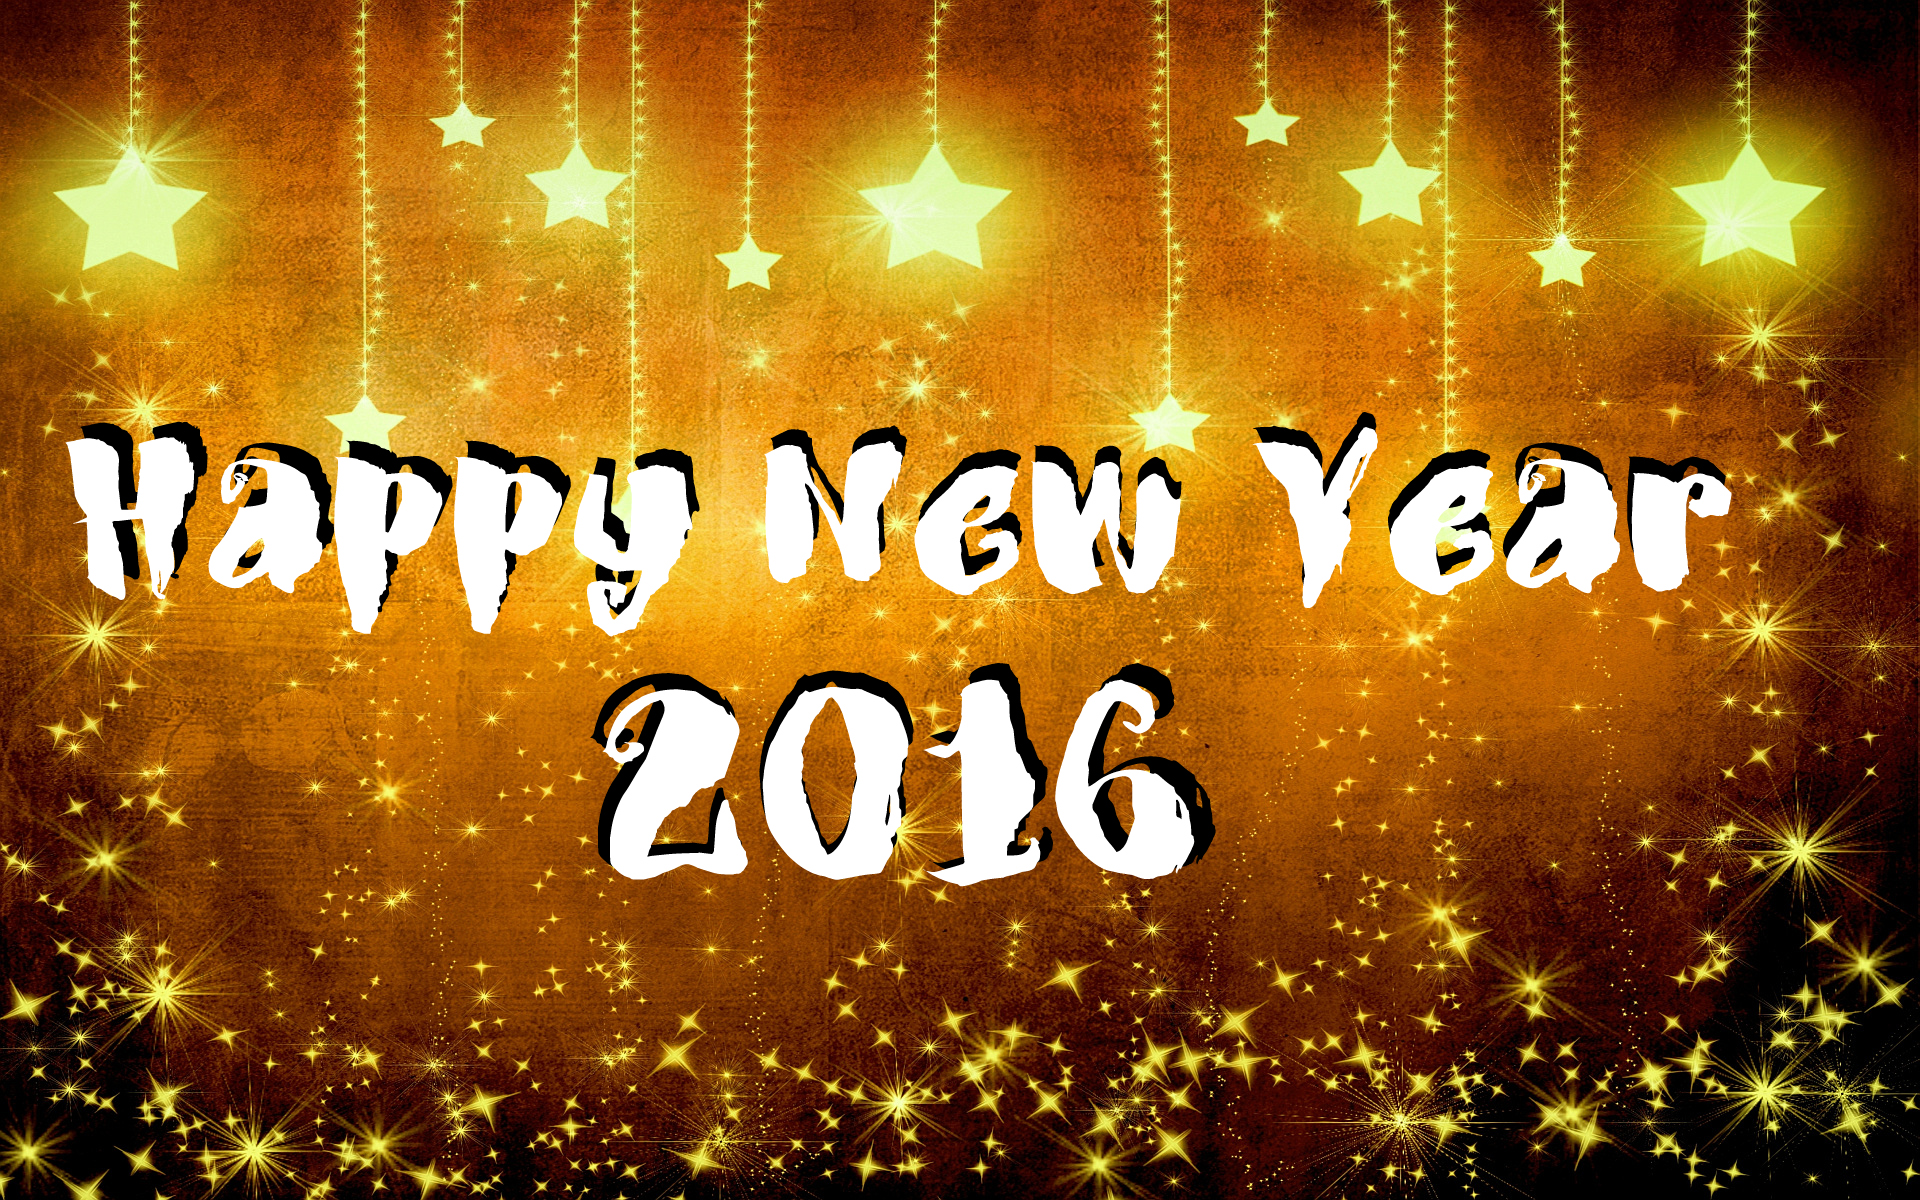 15056 – Happy New Year 2016 Widescreen Wallpaper – 1920×1200